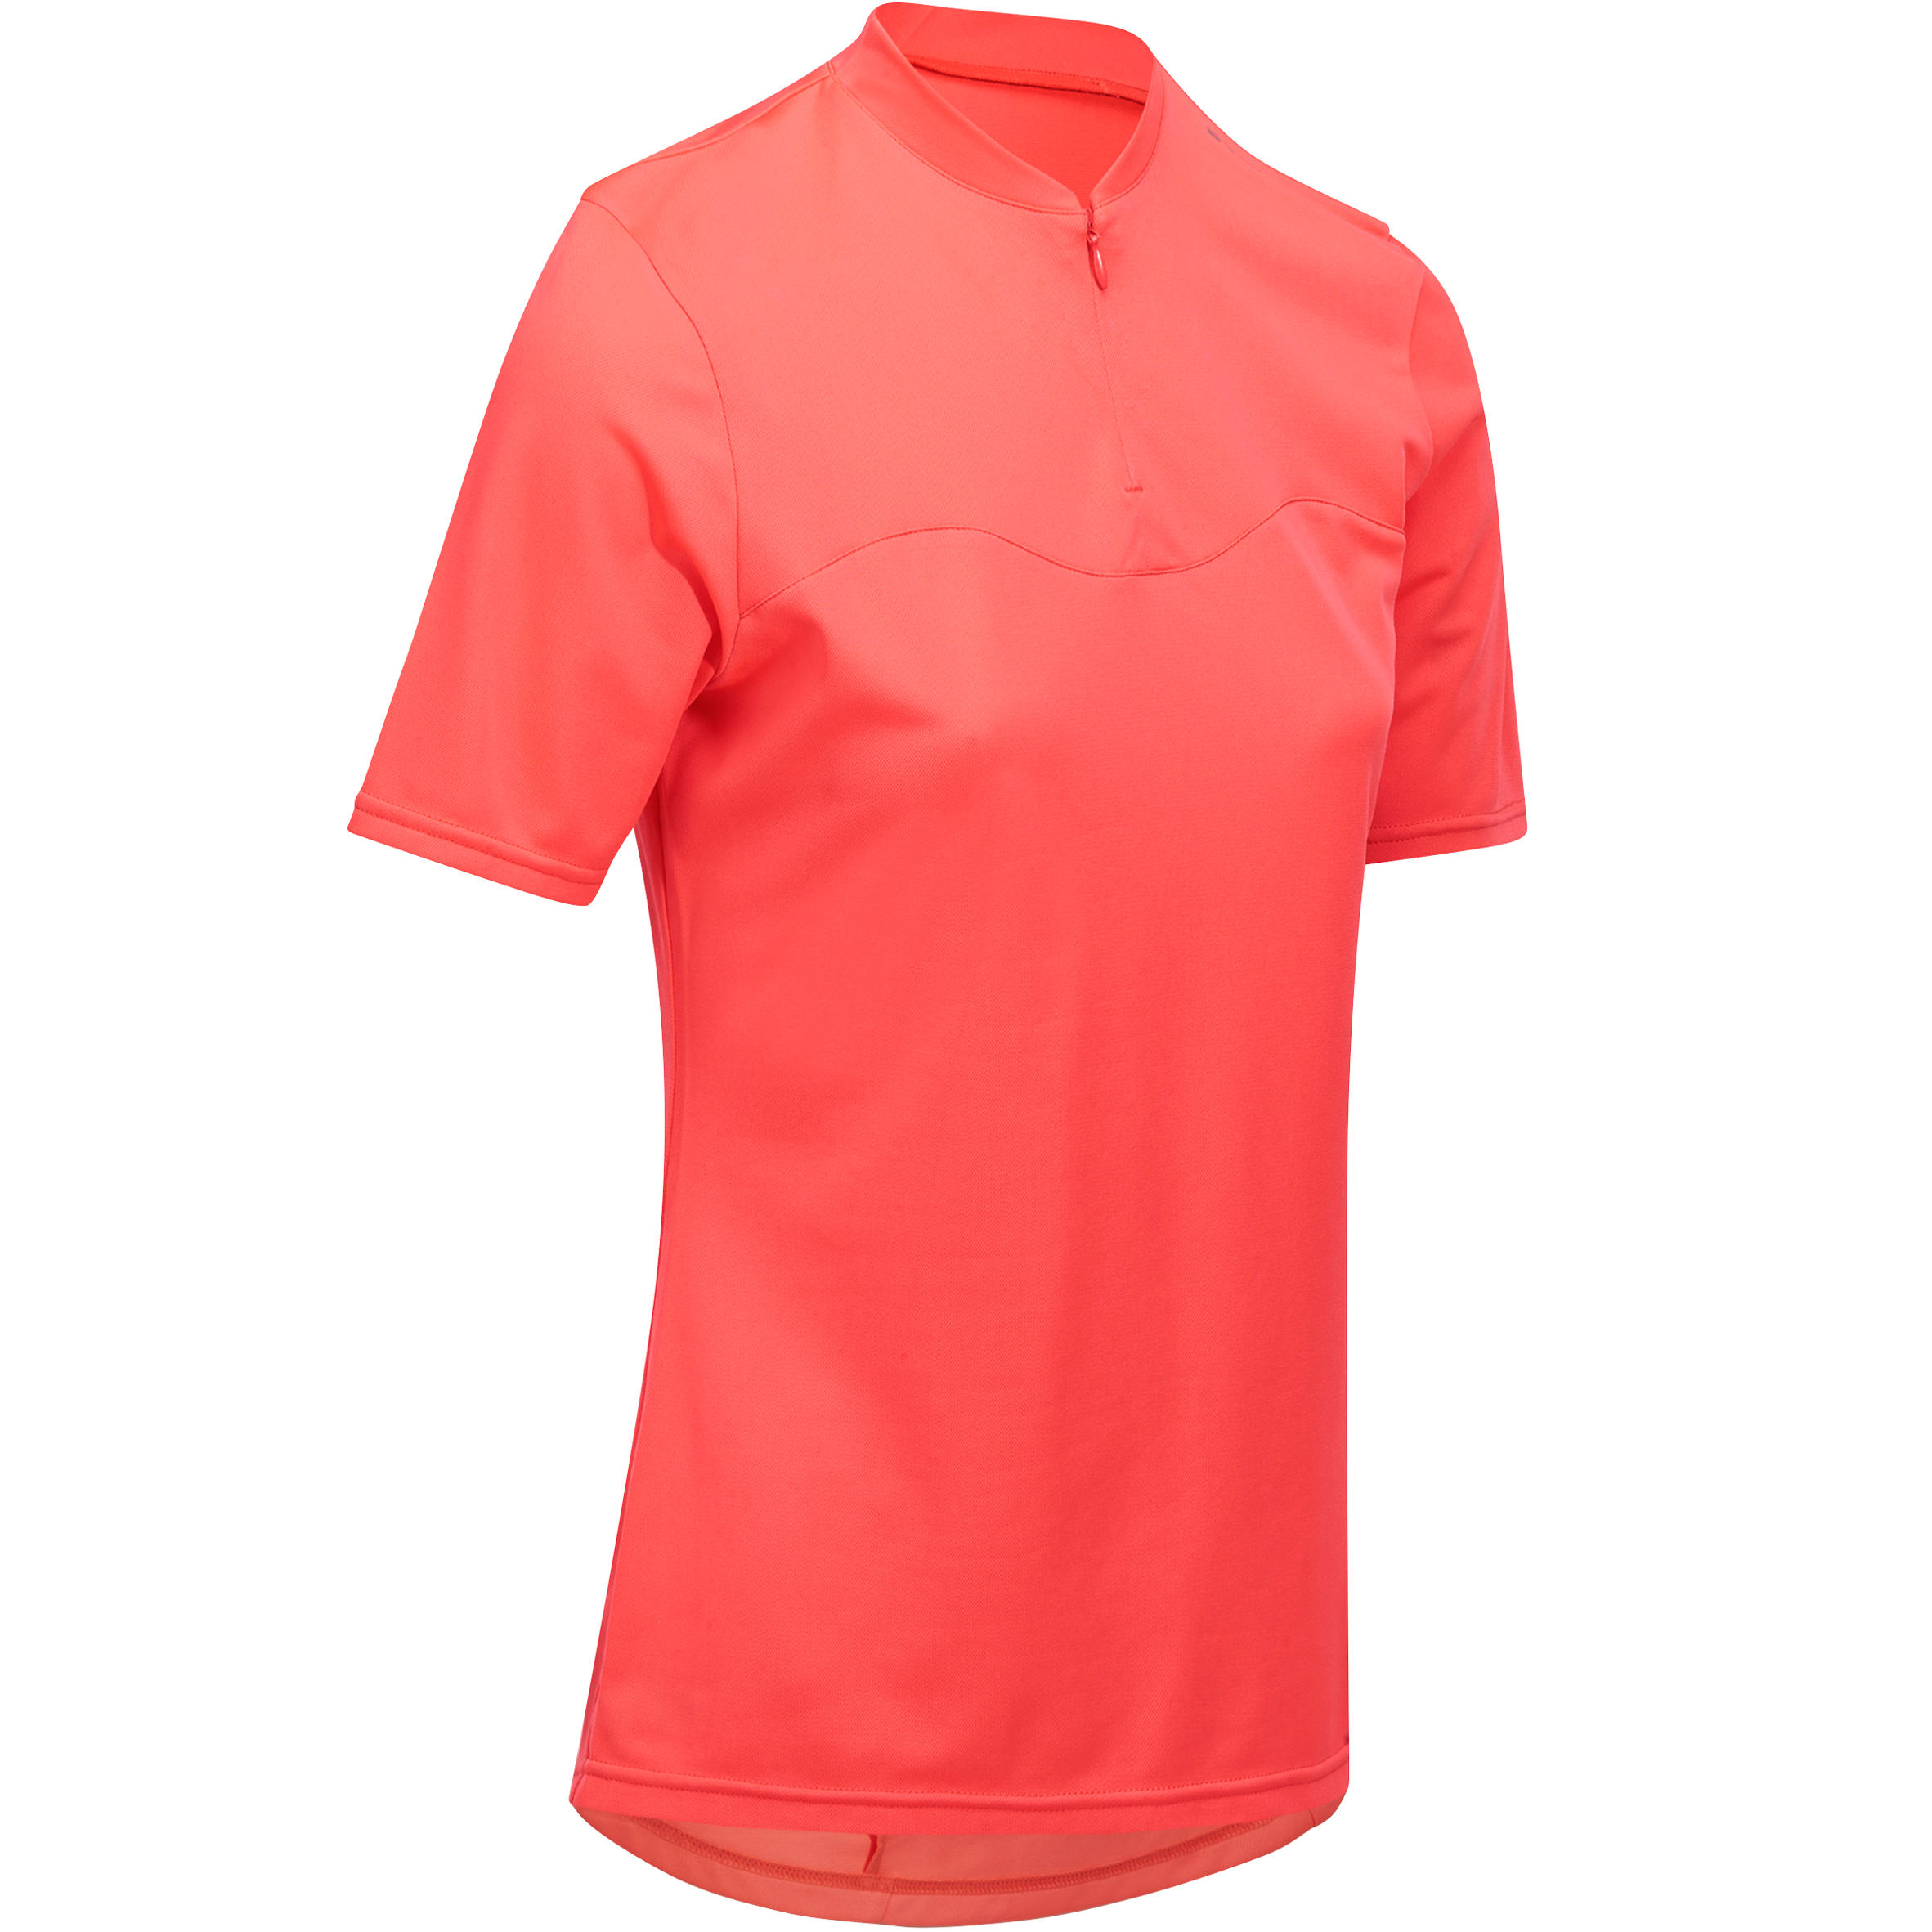 100 Women's Short-Sleeved Cycling Jersey - Pink